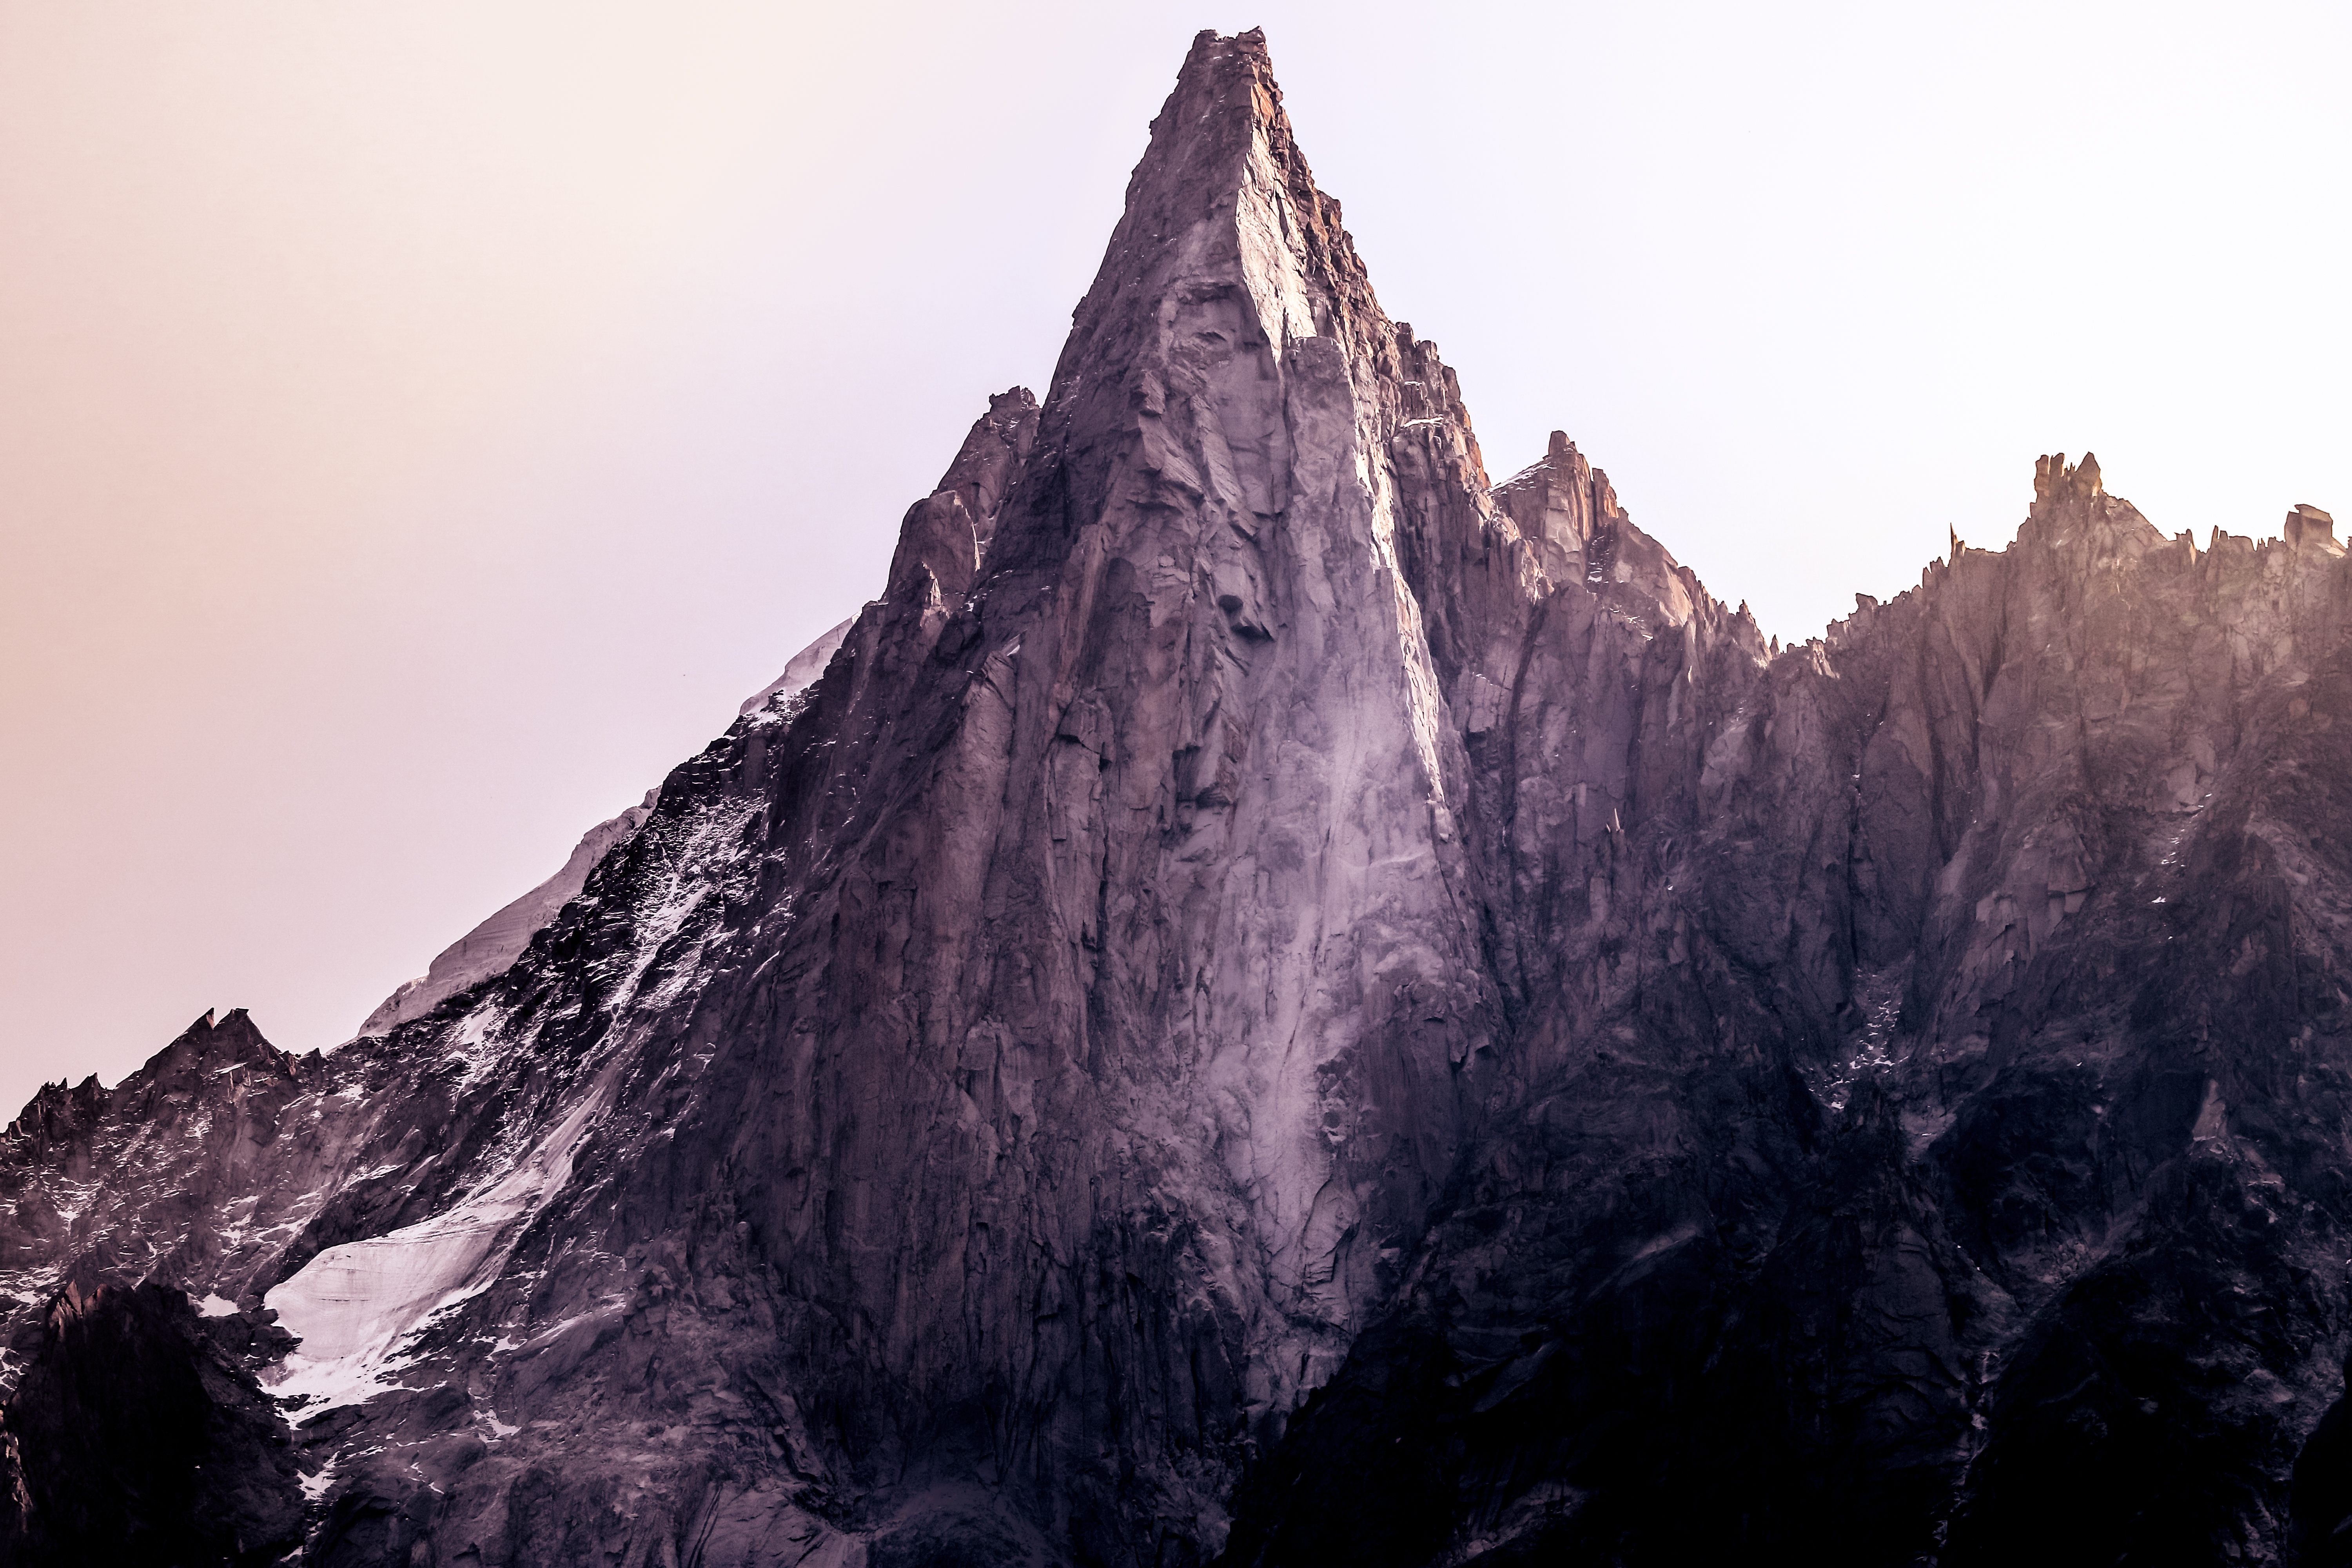 View on the Aiguille de Dru just opposite of the Mer de Glace station above Chamonix, France.